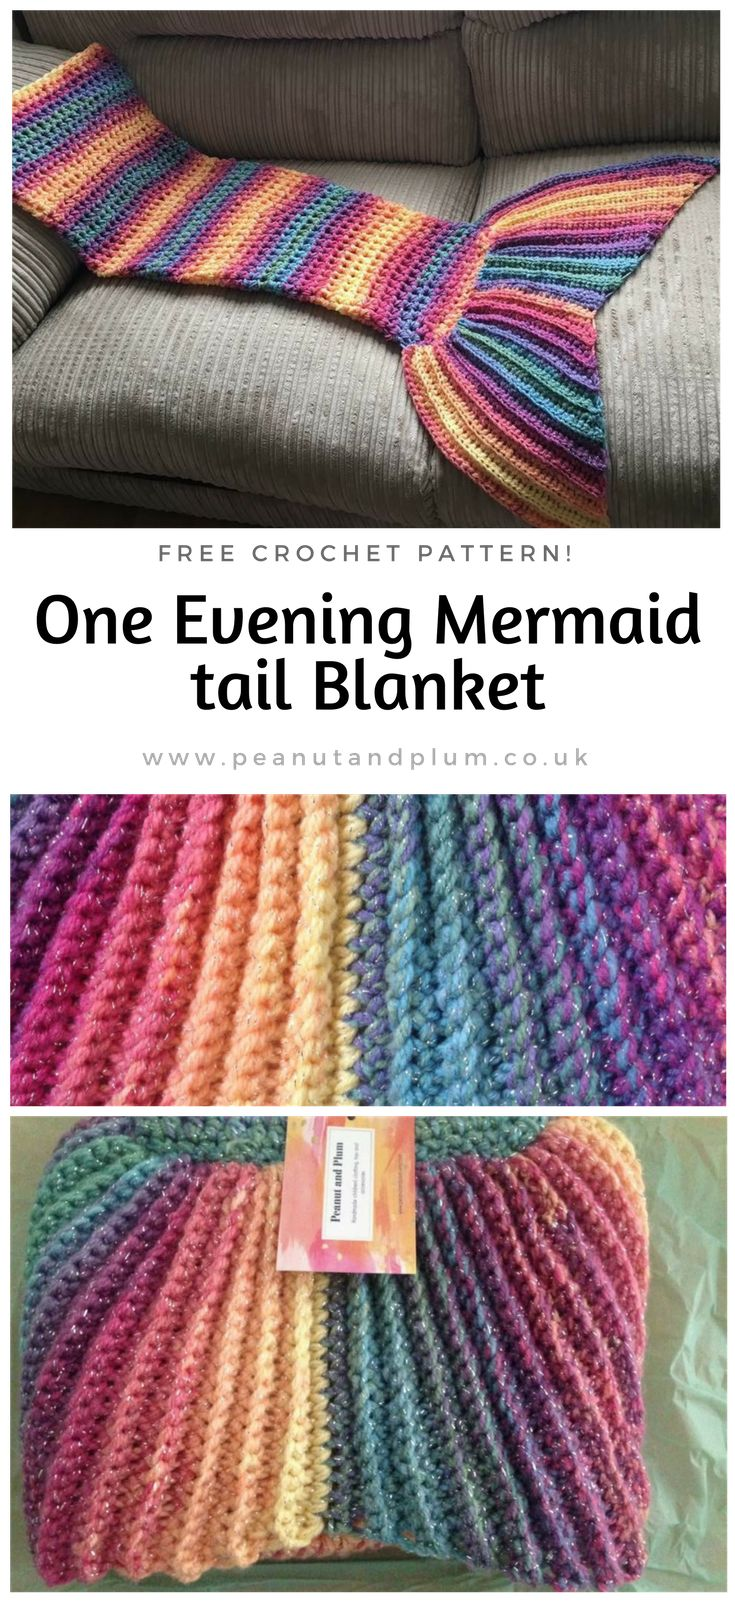 No counting, no pattern to follow. Make your own custom size Mermaid tail following these simple steps! #crochet #freecrochetpatterns #mermaidtail #crochetforbeginners #peanutandplum